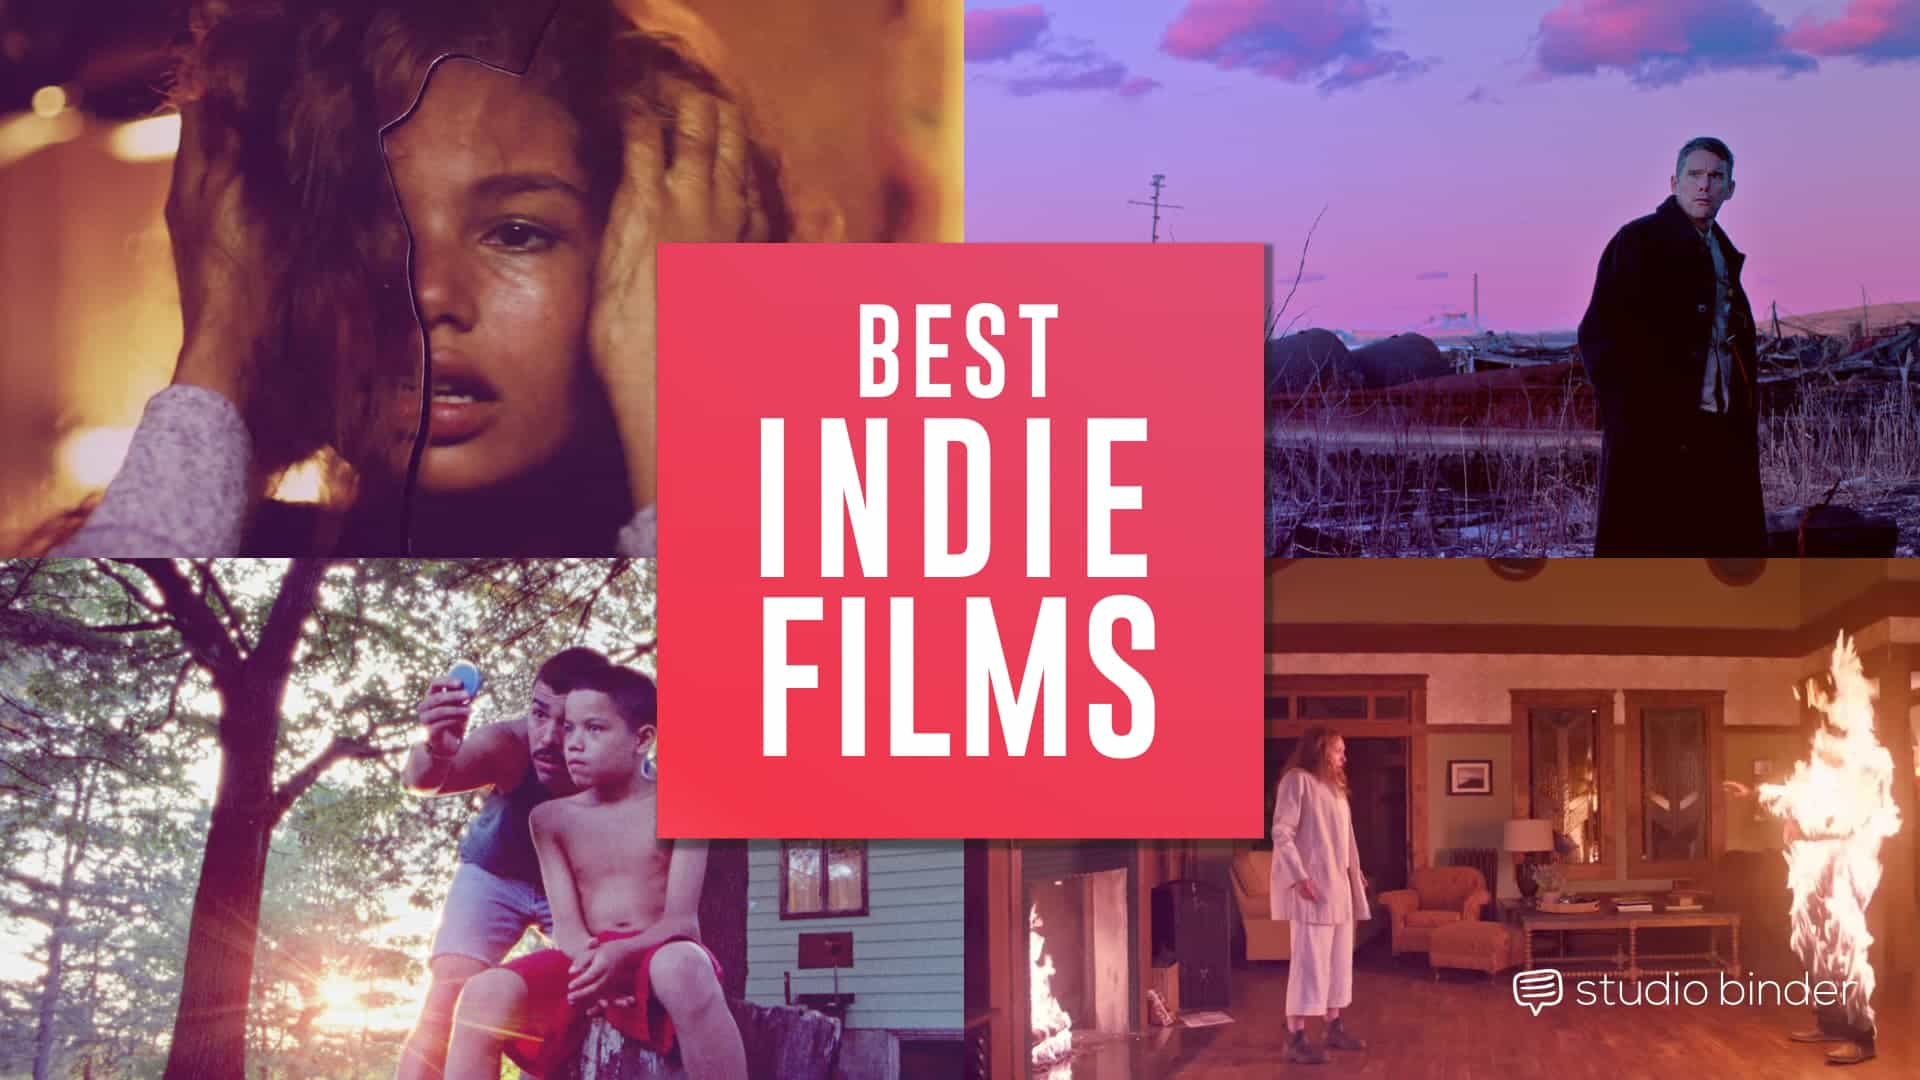 Best Independent Films 2019 The Best Independent Films to Inspire Your Craft Right Now (2019)